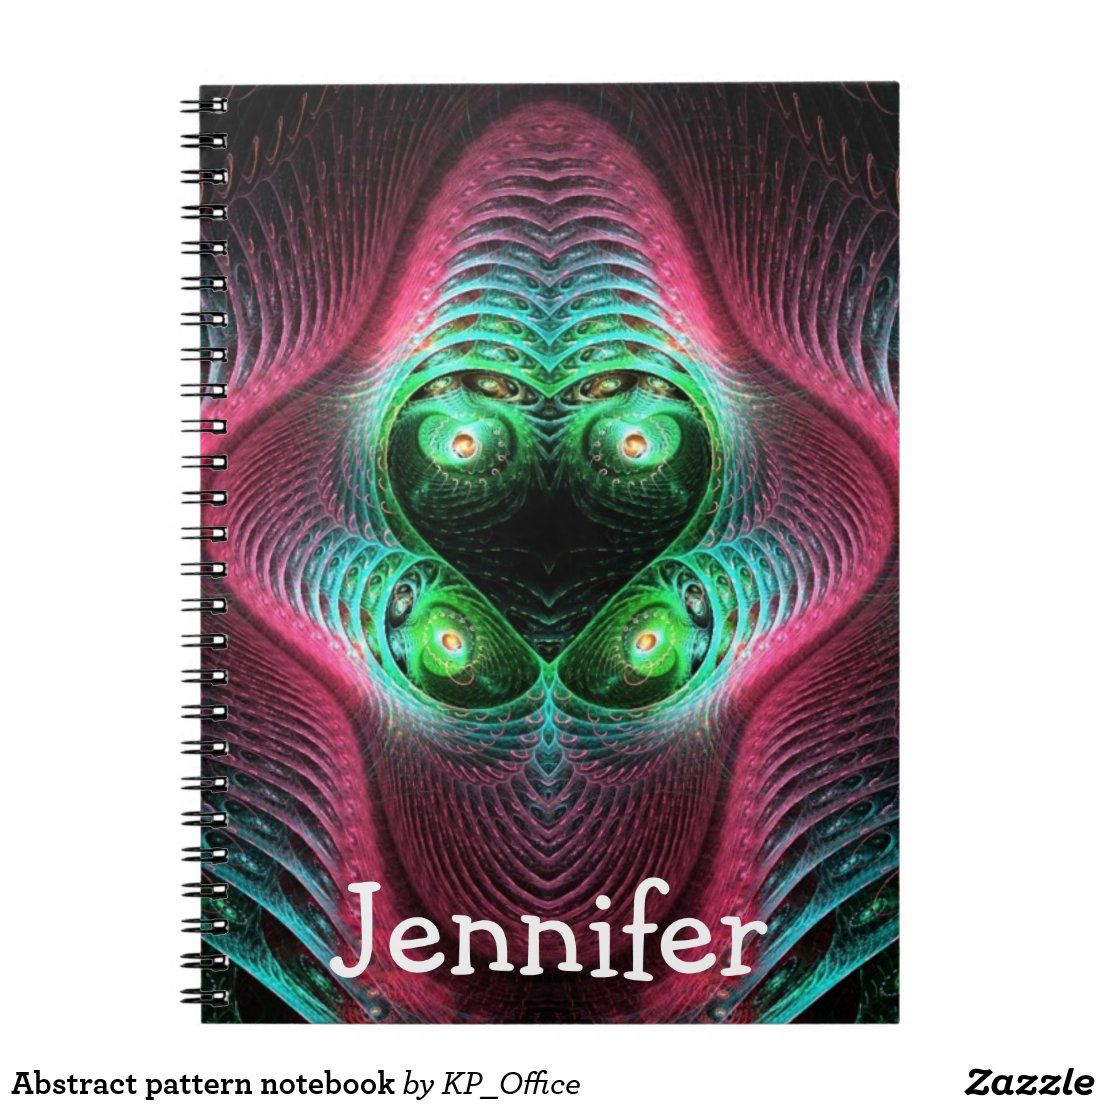 Abstract pattern notebook in 2020 Pattern